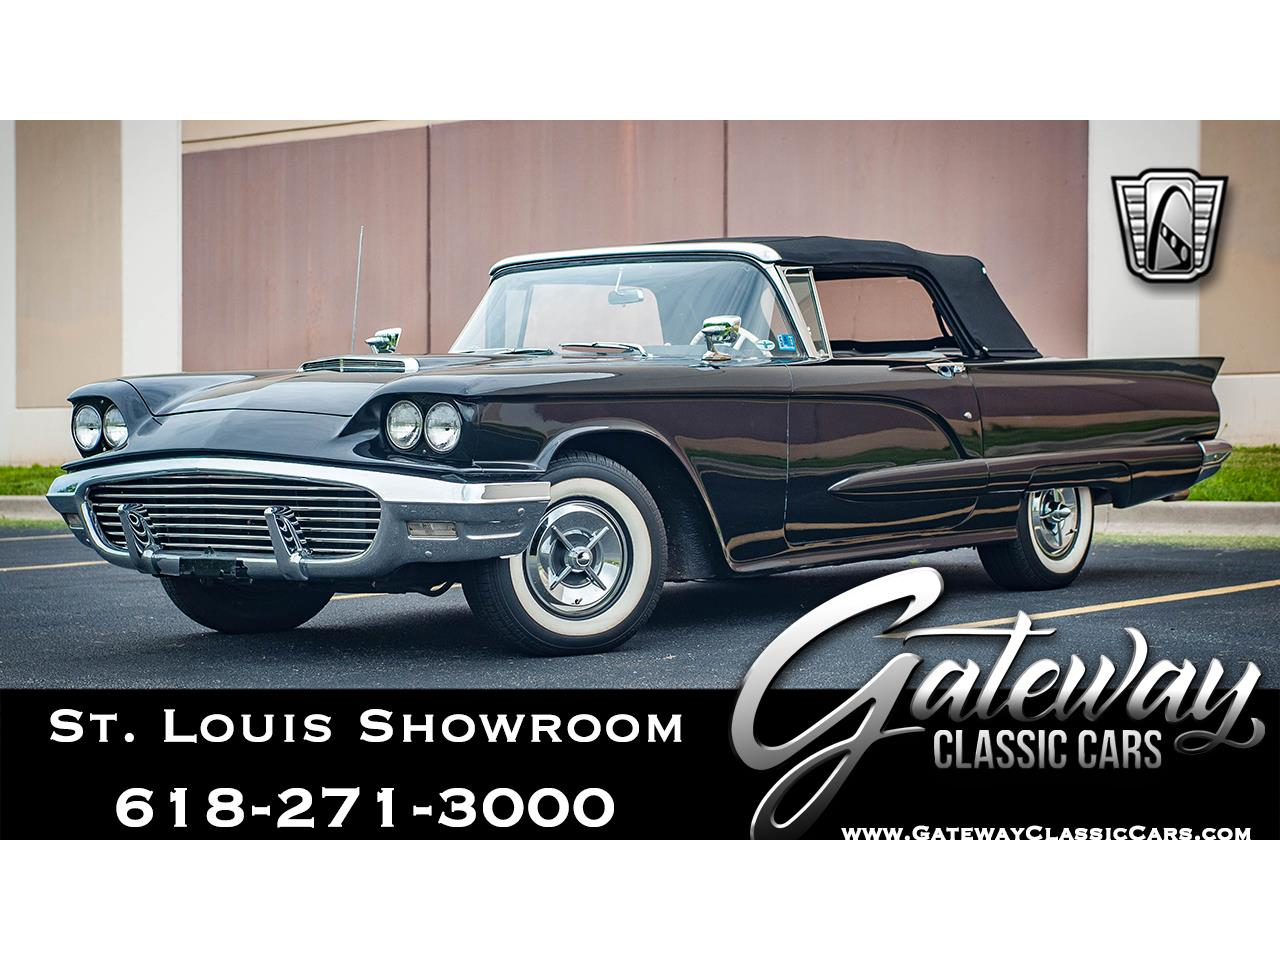 Large Picture of 1960 Ford Thunderbird located in O'Fallon Illinois Offered by Gateway Classic Cars - St. Louis - QB9W